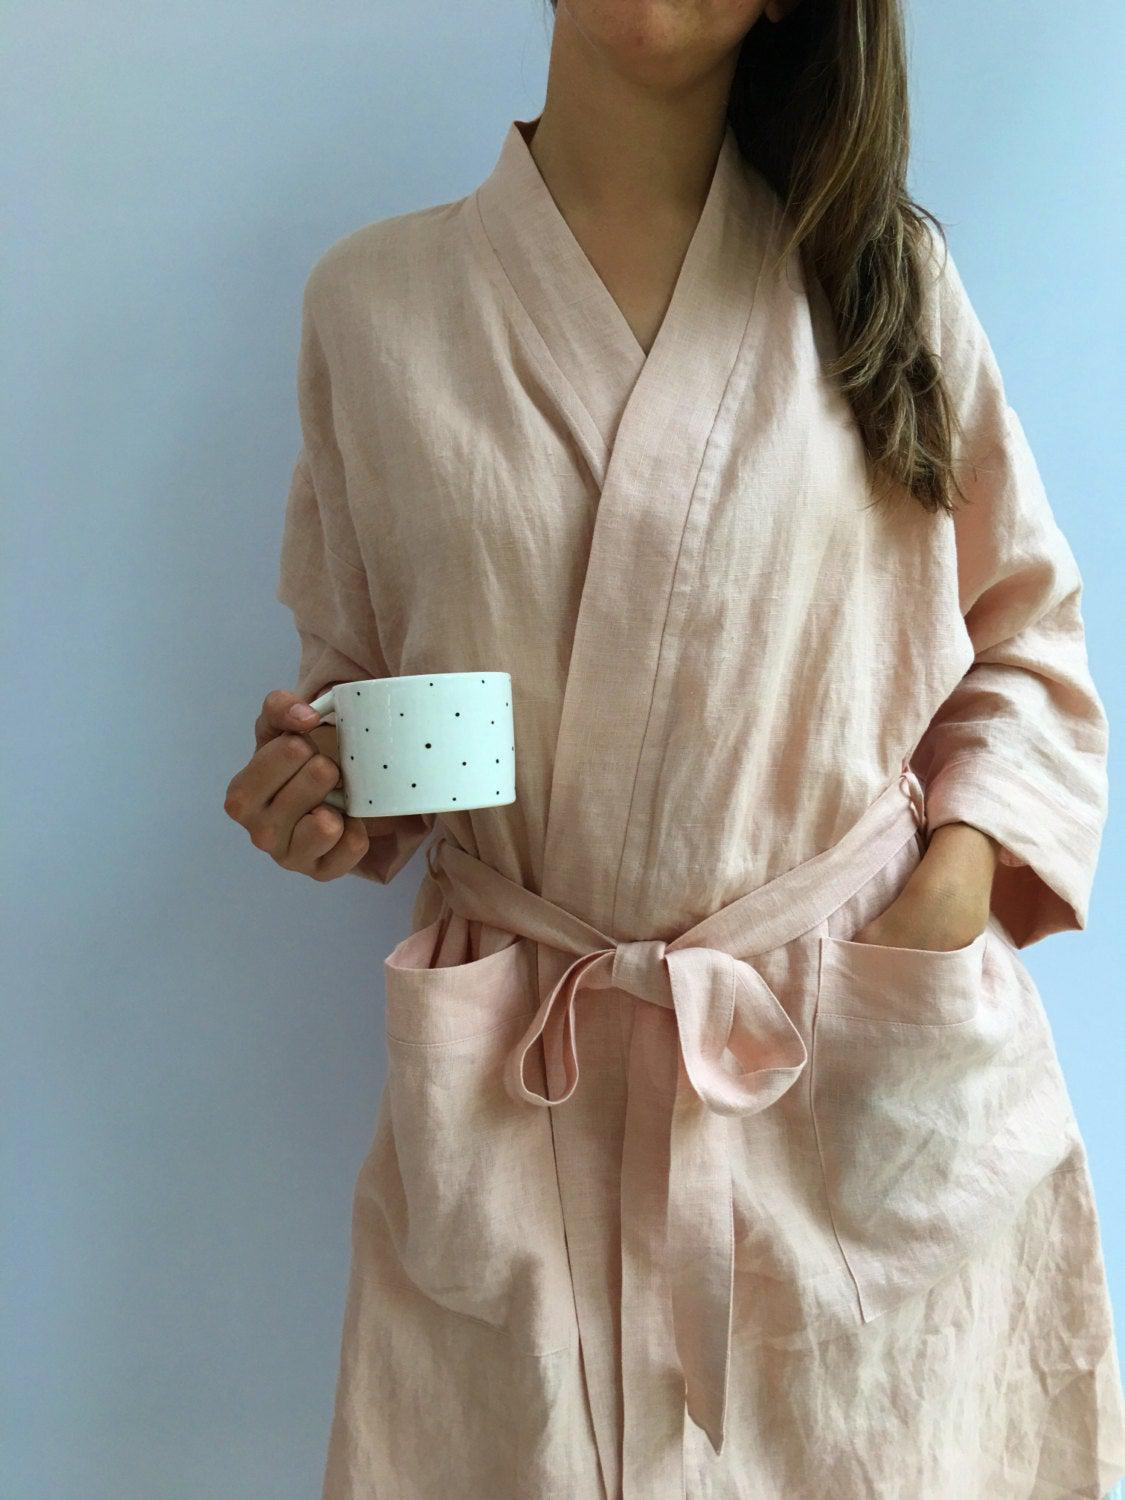 Linen robe, soft kimono robe, robe coverup, robe for bride, linen bath robe, linen night gown, morning dress, linen sleep wear, women robe